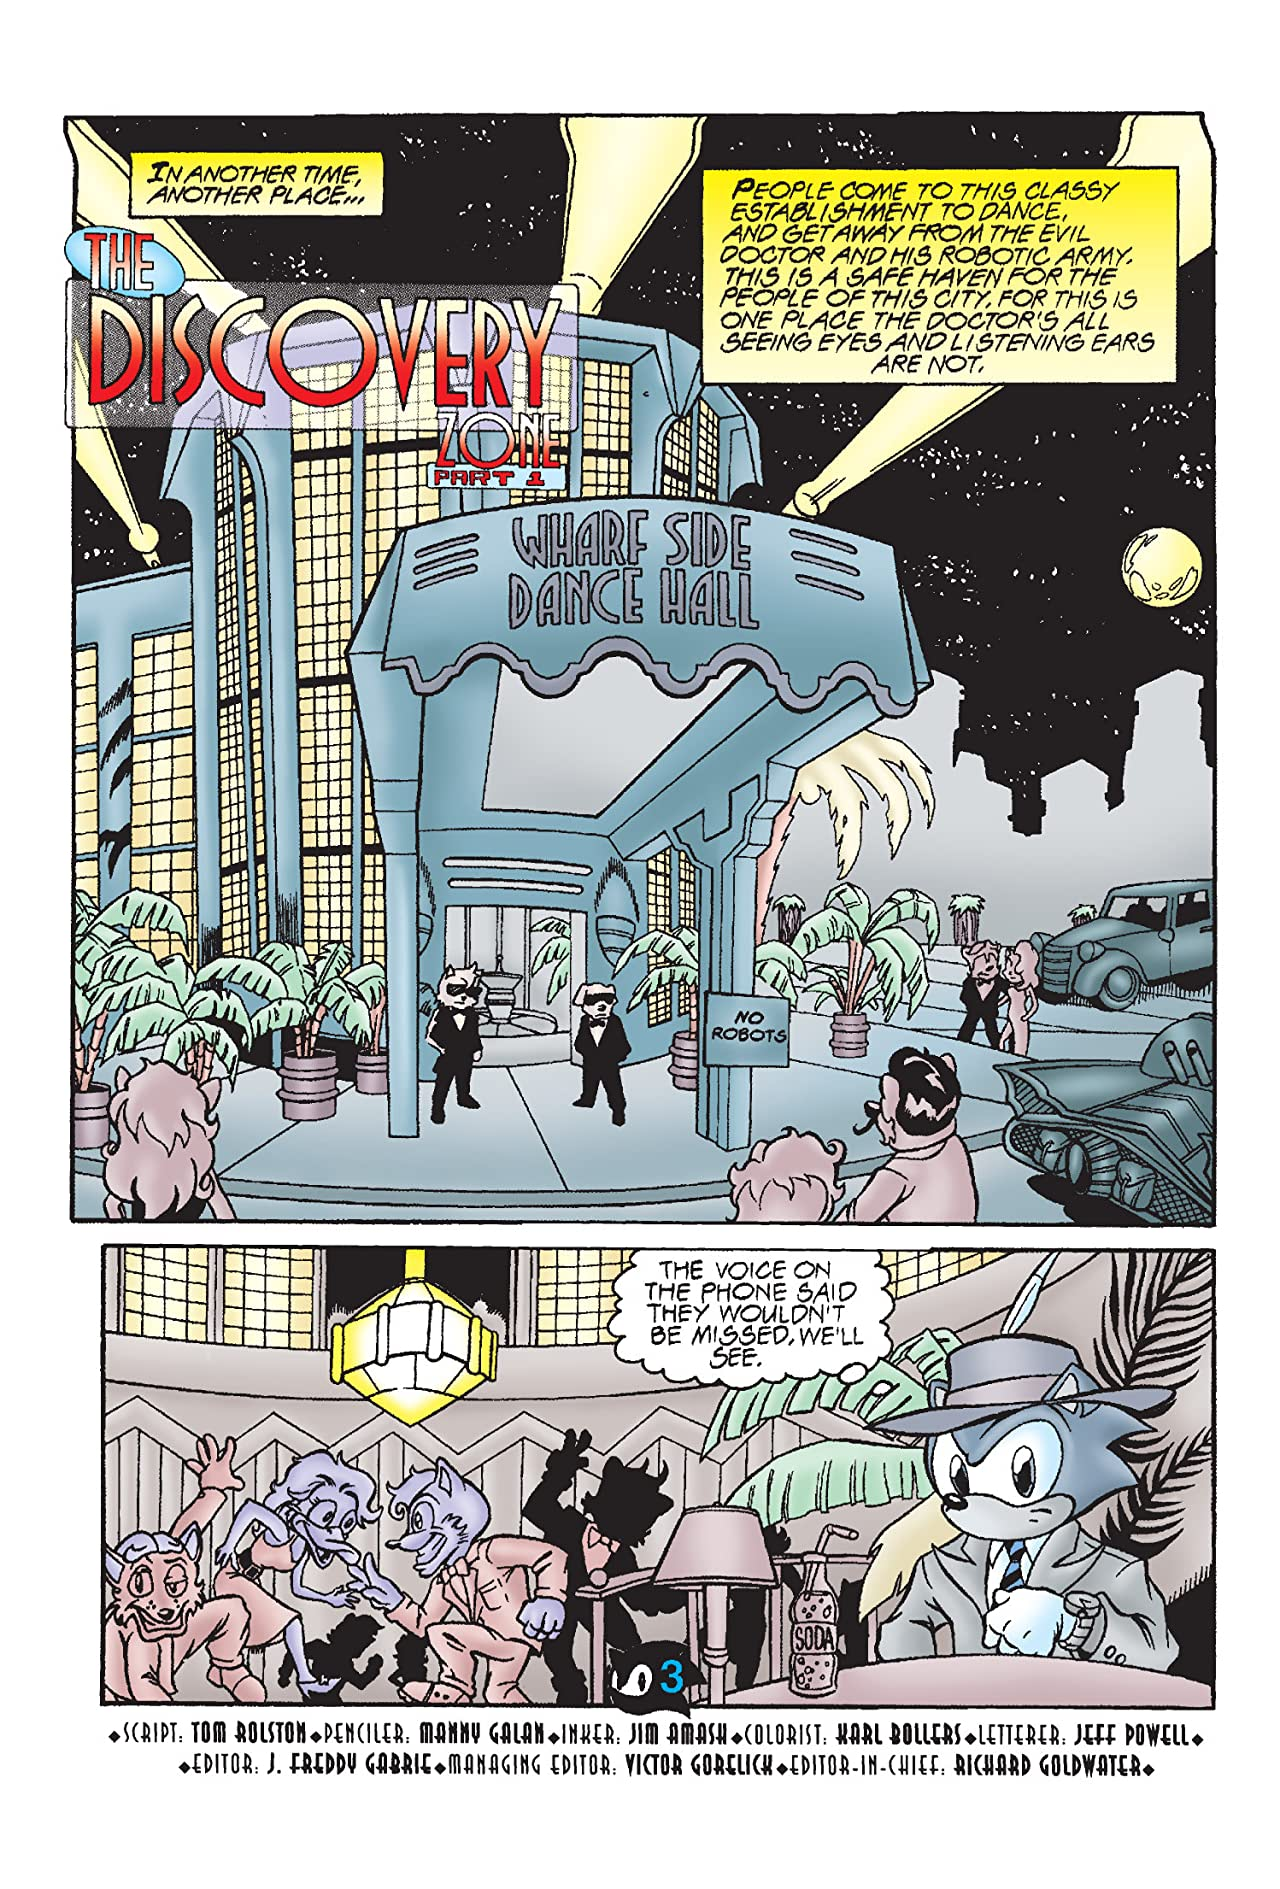 Sonic the Hedgehog #52